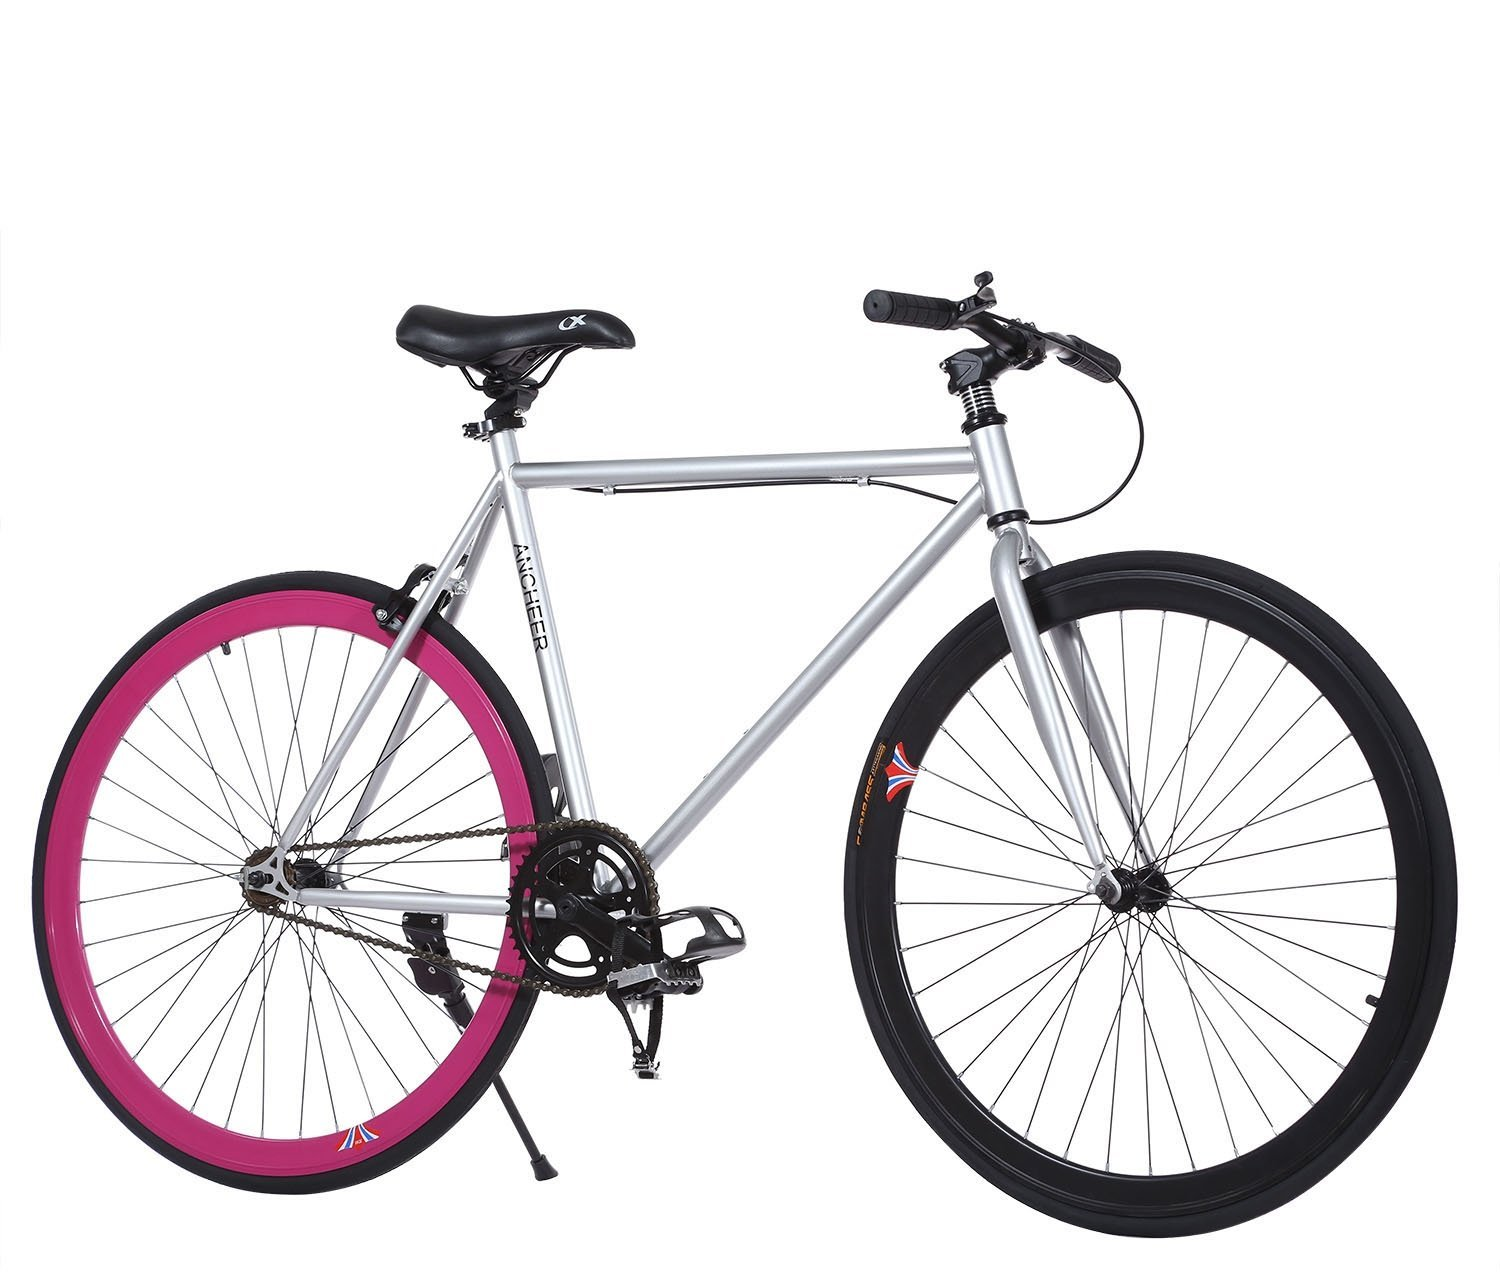 f7c0ccd7e81 Get Quotations · Ancheer Fixed Gear Bike Single Speed Urban Fixie Bike